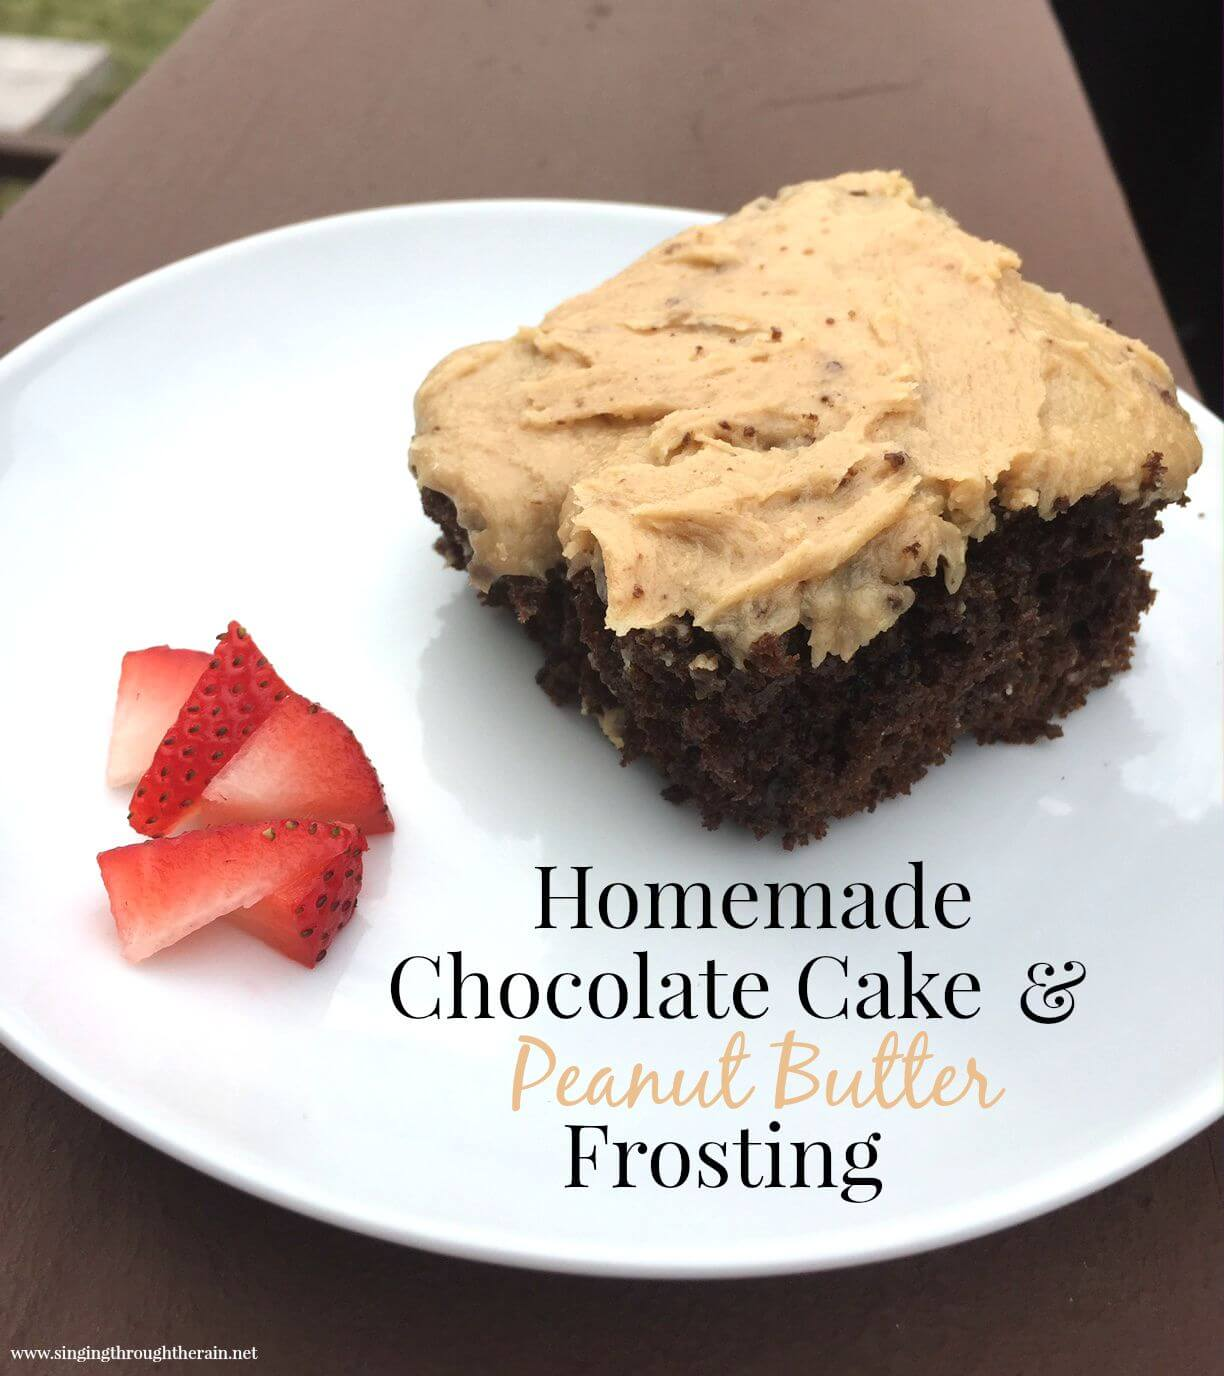 How To Make Homemade Cake Frosting From Scratch